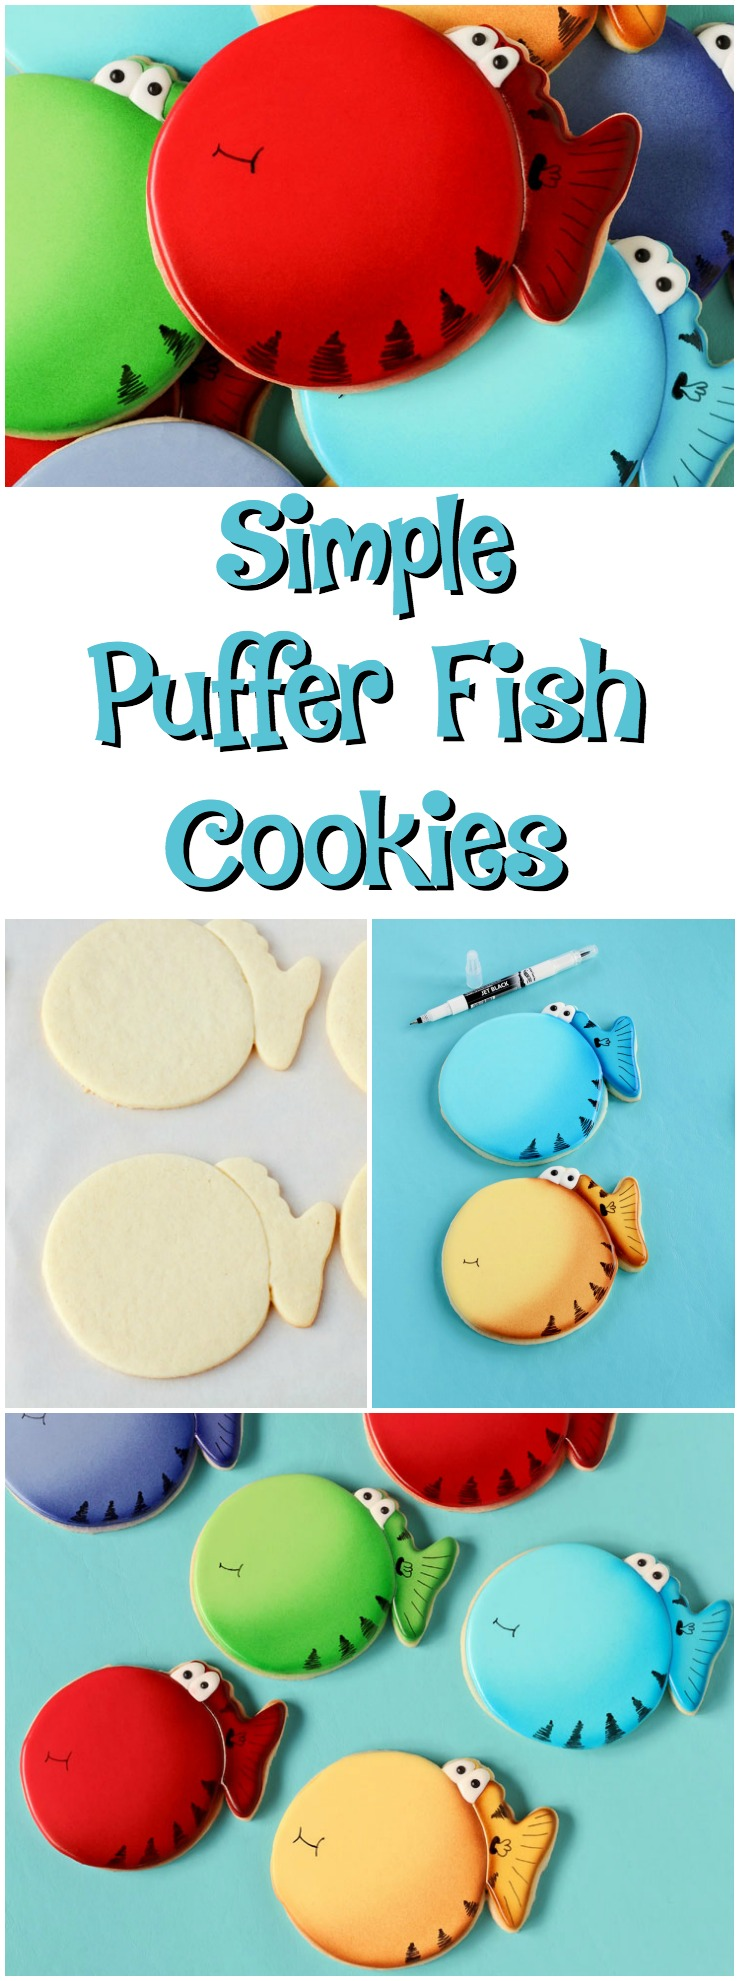 Simple Puffer Fish Cookies -Sugar Cookies Decorated with Royal Icing via www.thebearfootbaker.com